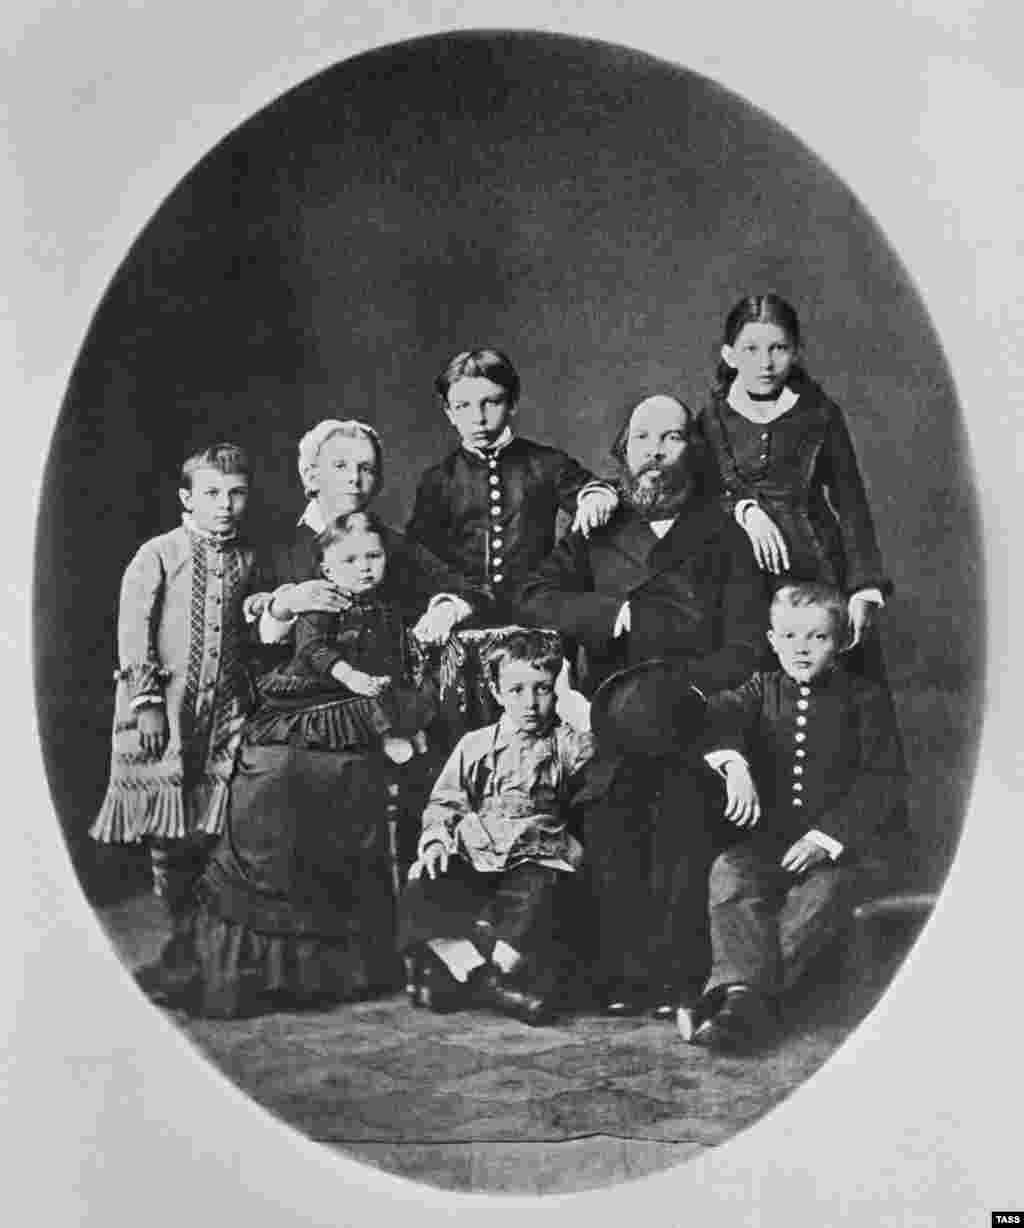 Lenin was born Vladimir Ilyich Ulyanov in Simbirsk (now Ulyanovsk) on April 22, 1870. In this photo from 1879, he poses with his family (front row, right).